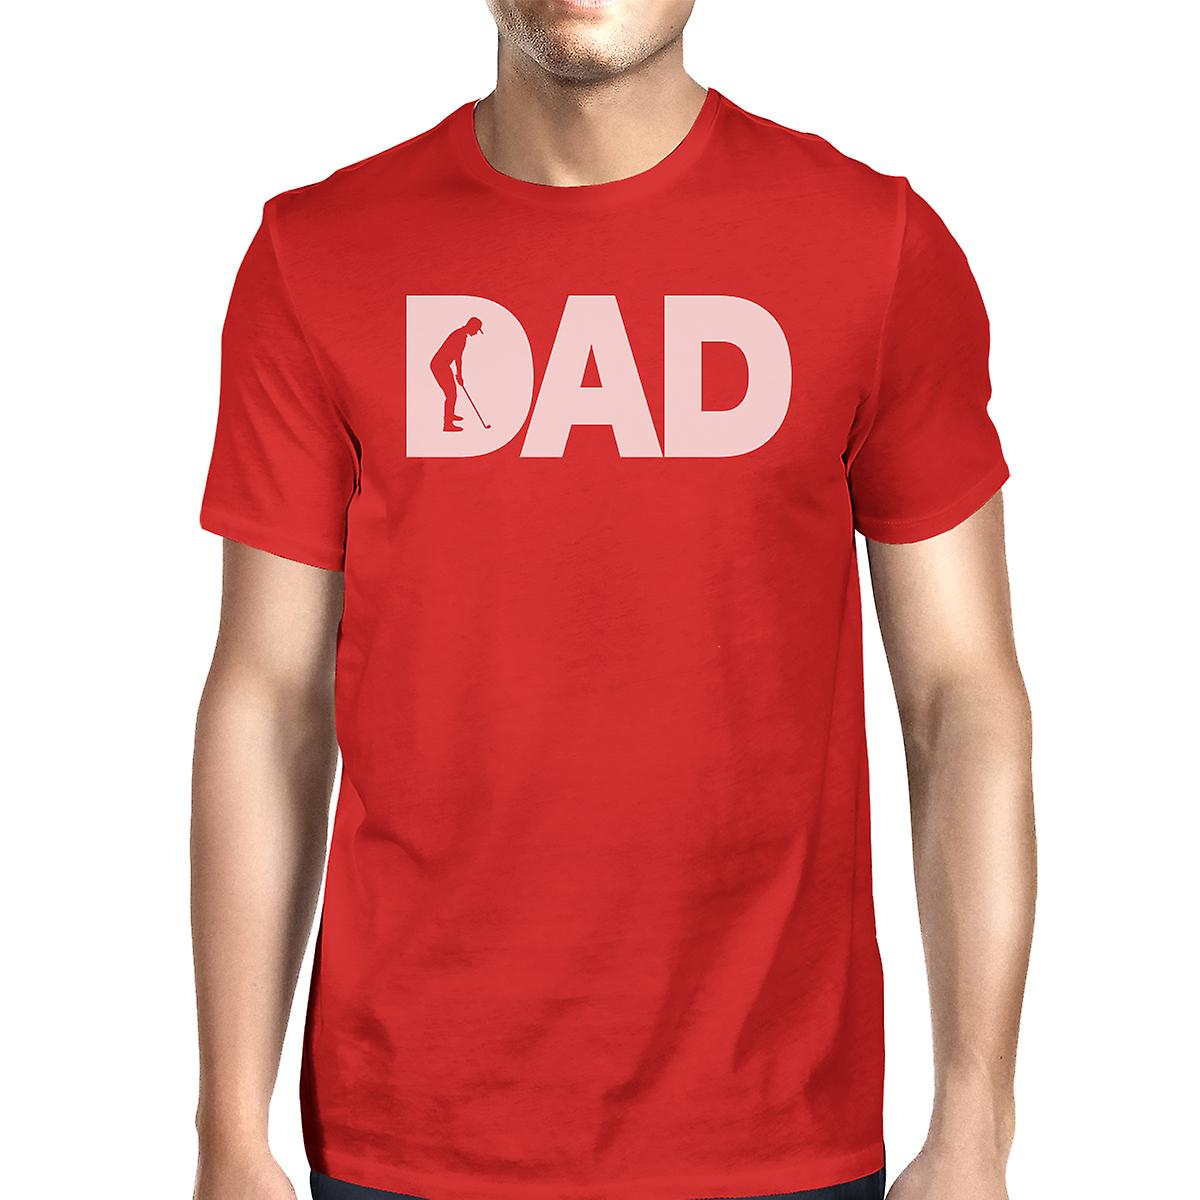 T shirt perfect for you